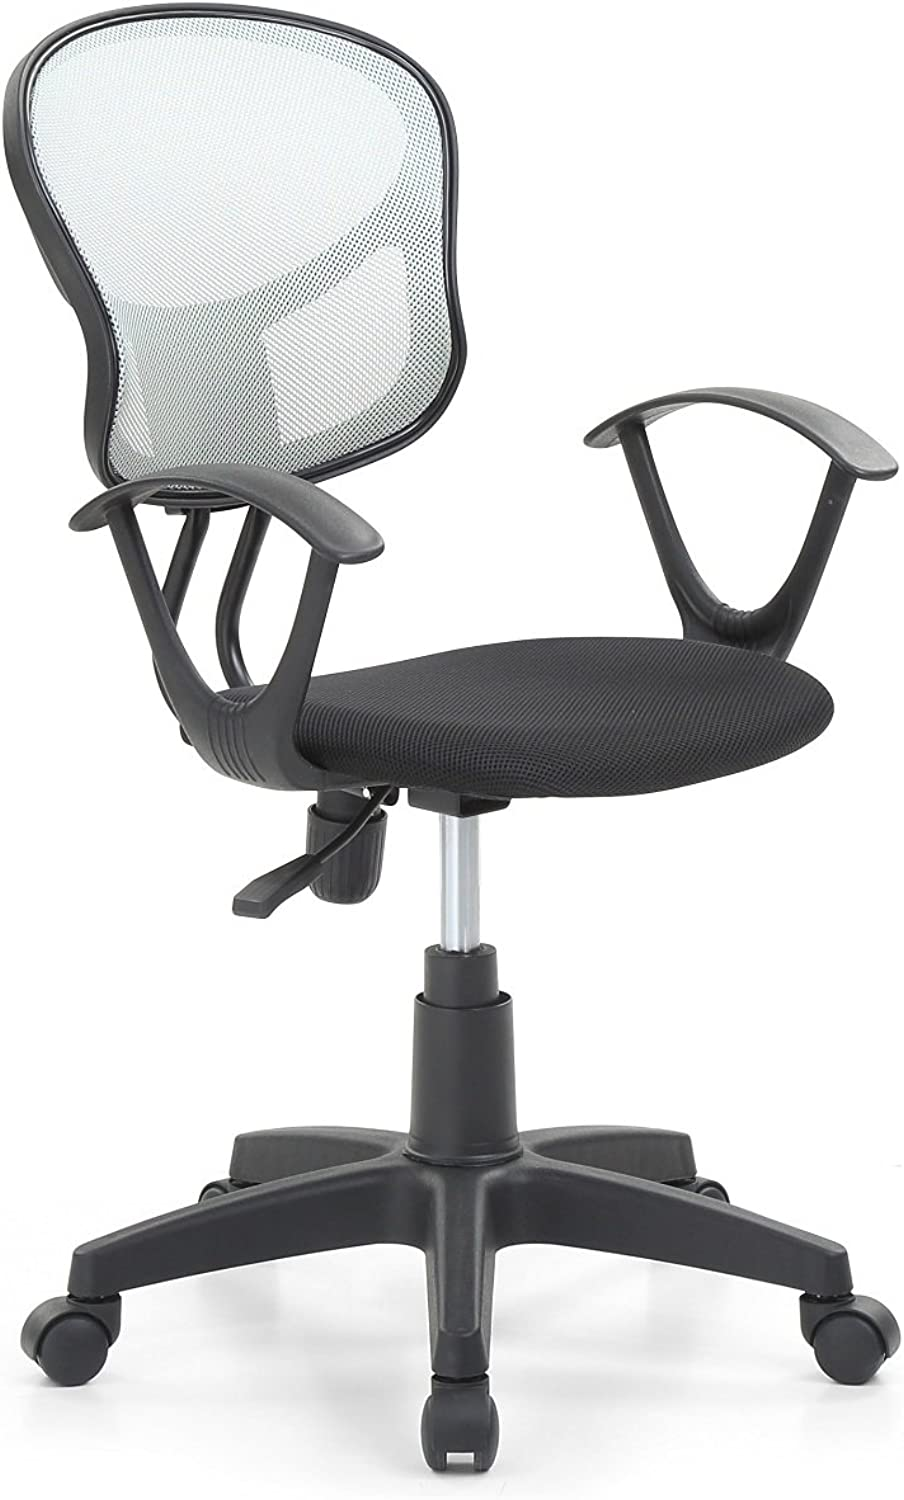 Hodedah Mesh Office Chair with Arms, Adjustable Height, and Swivel Functionality, Grey